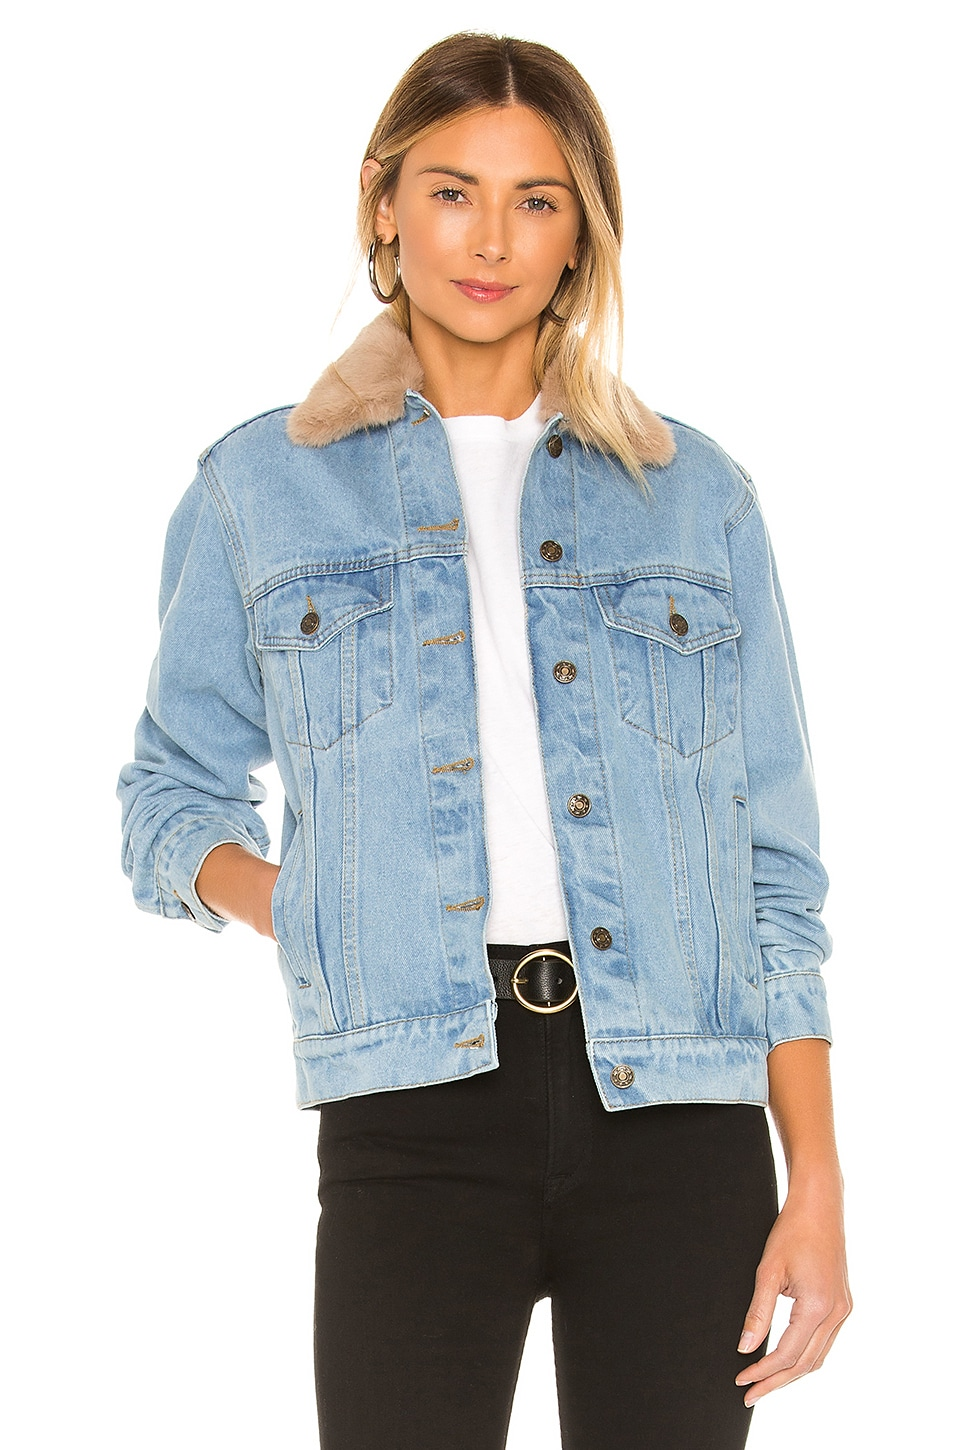 Understated Leather Lonewolf Jacket With Faux Fur Collar in Stone Wash